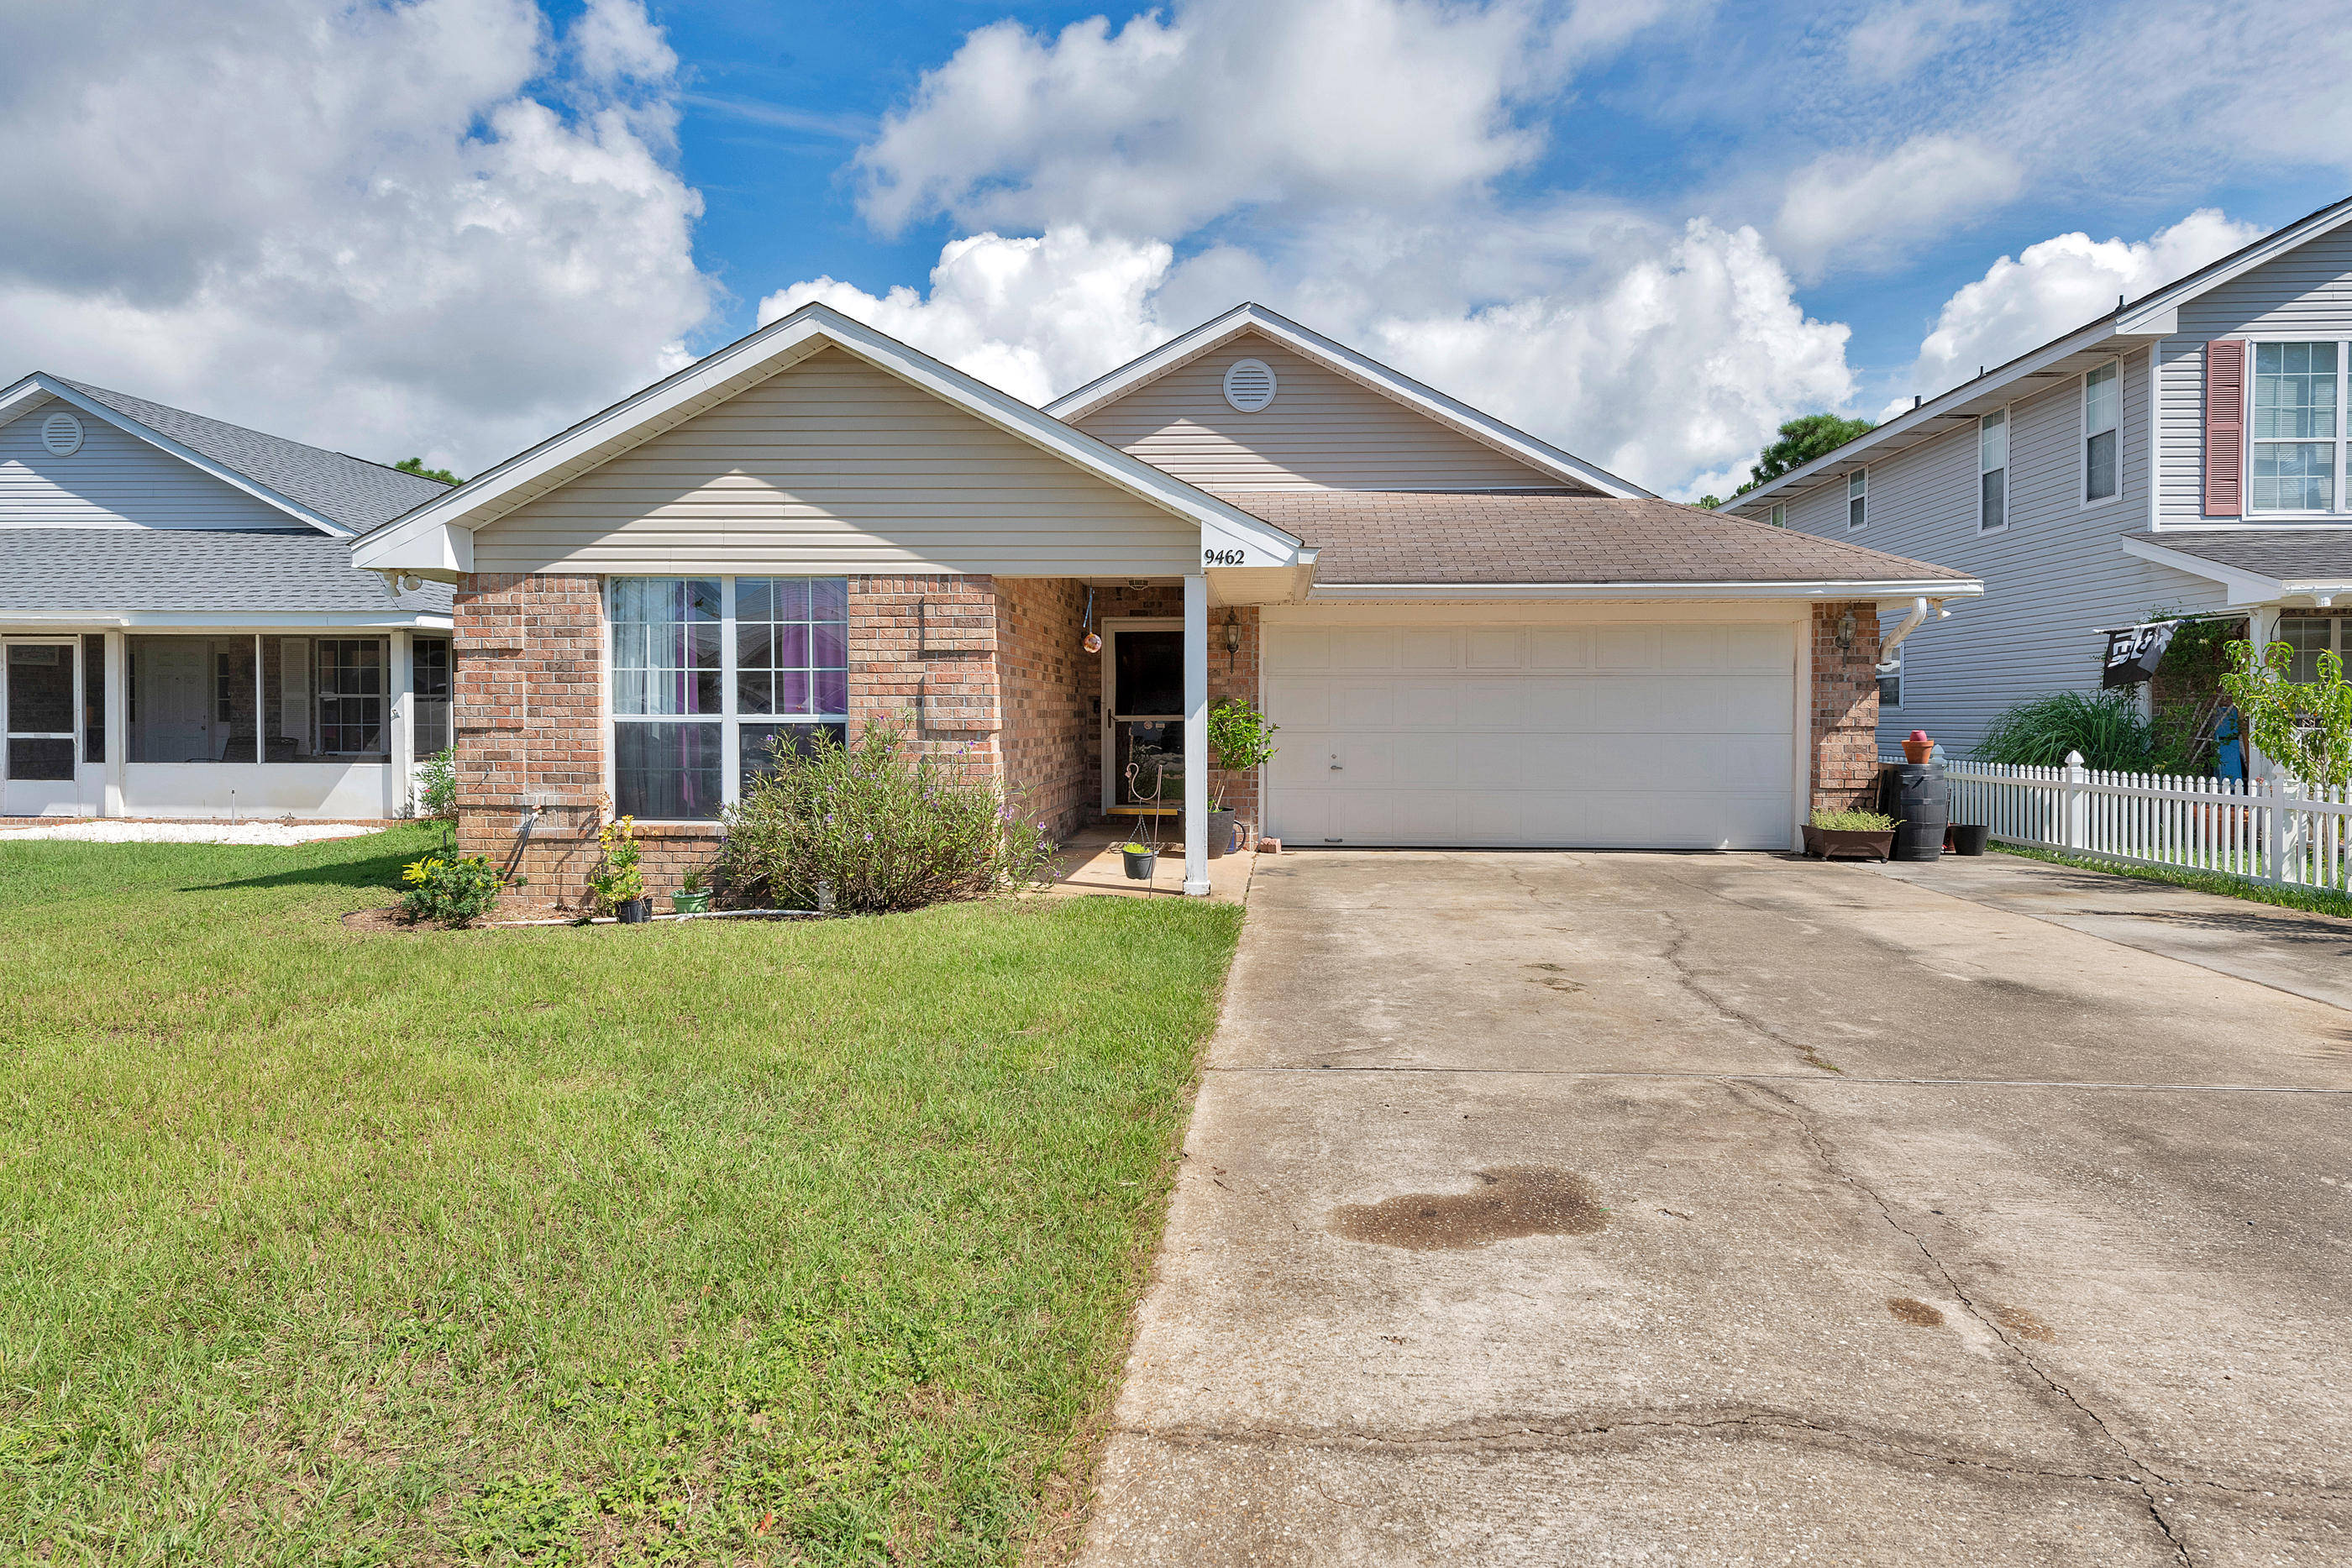 Photo of home for sale at 9462 Pine Lilly, Navarre FL